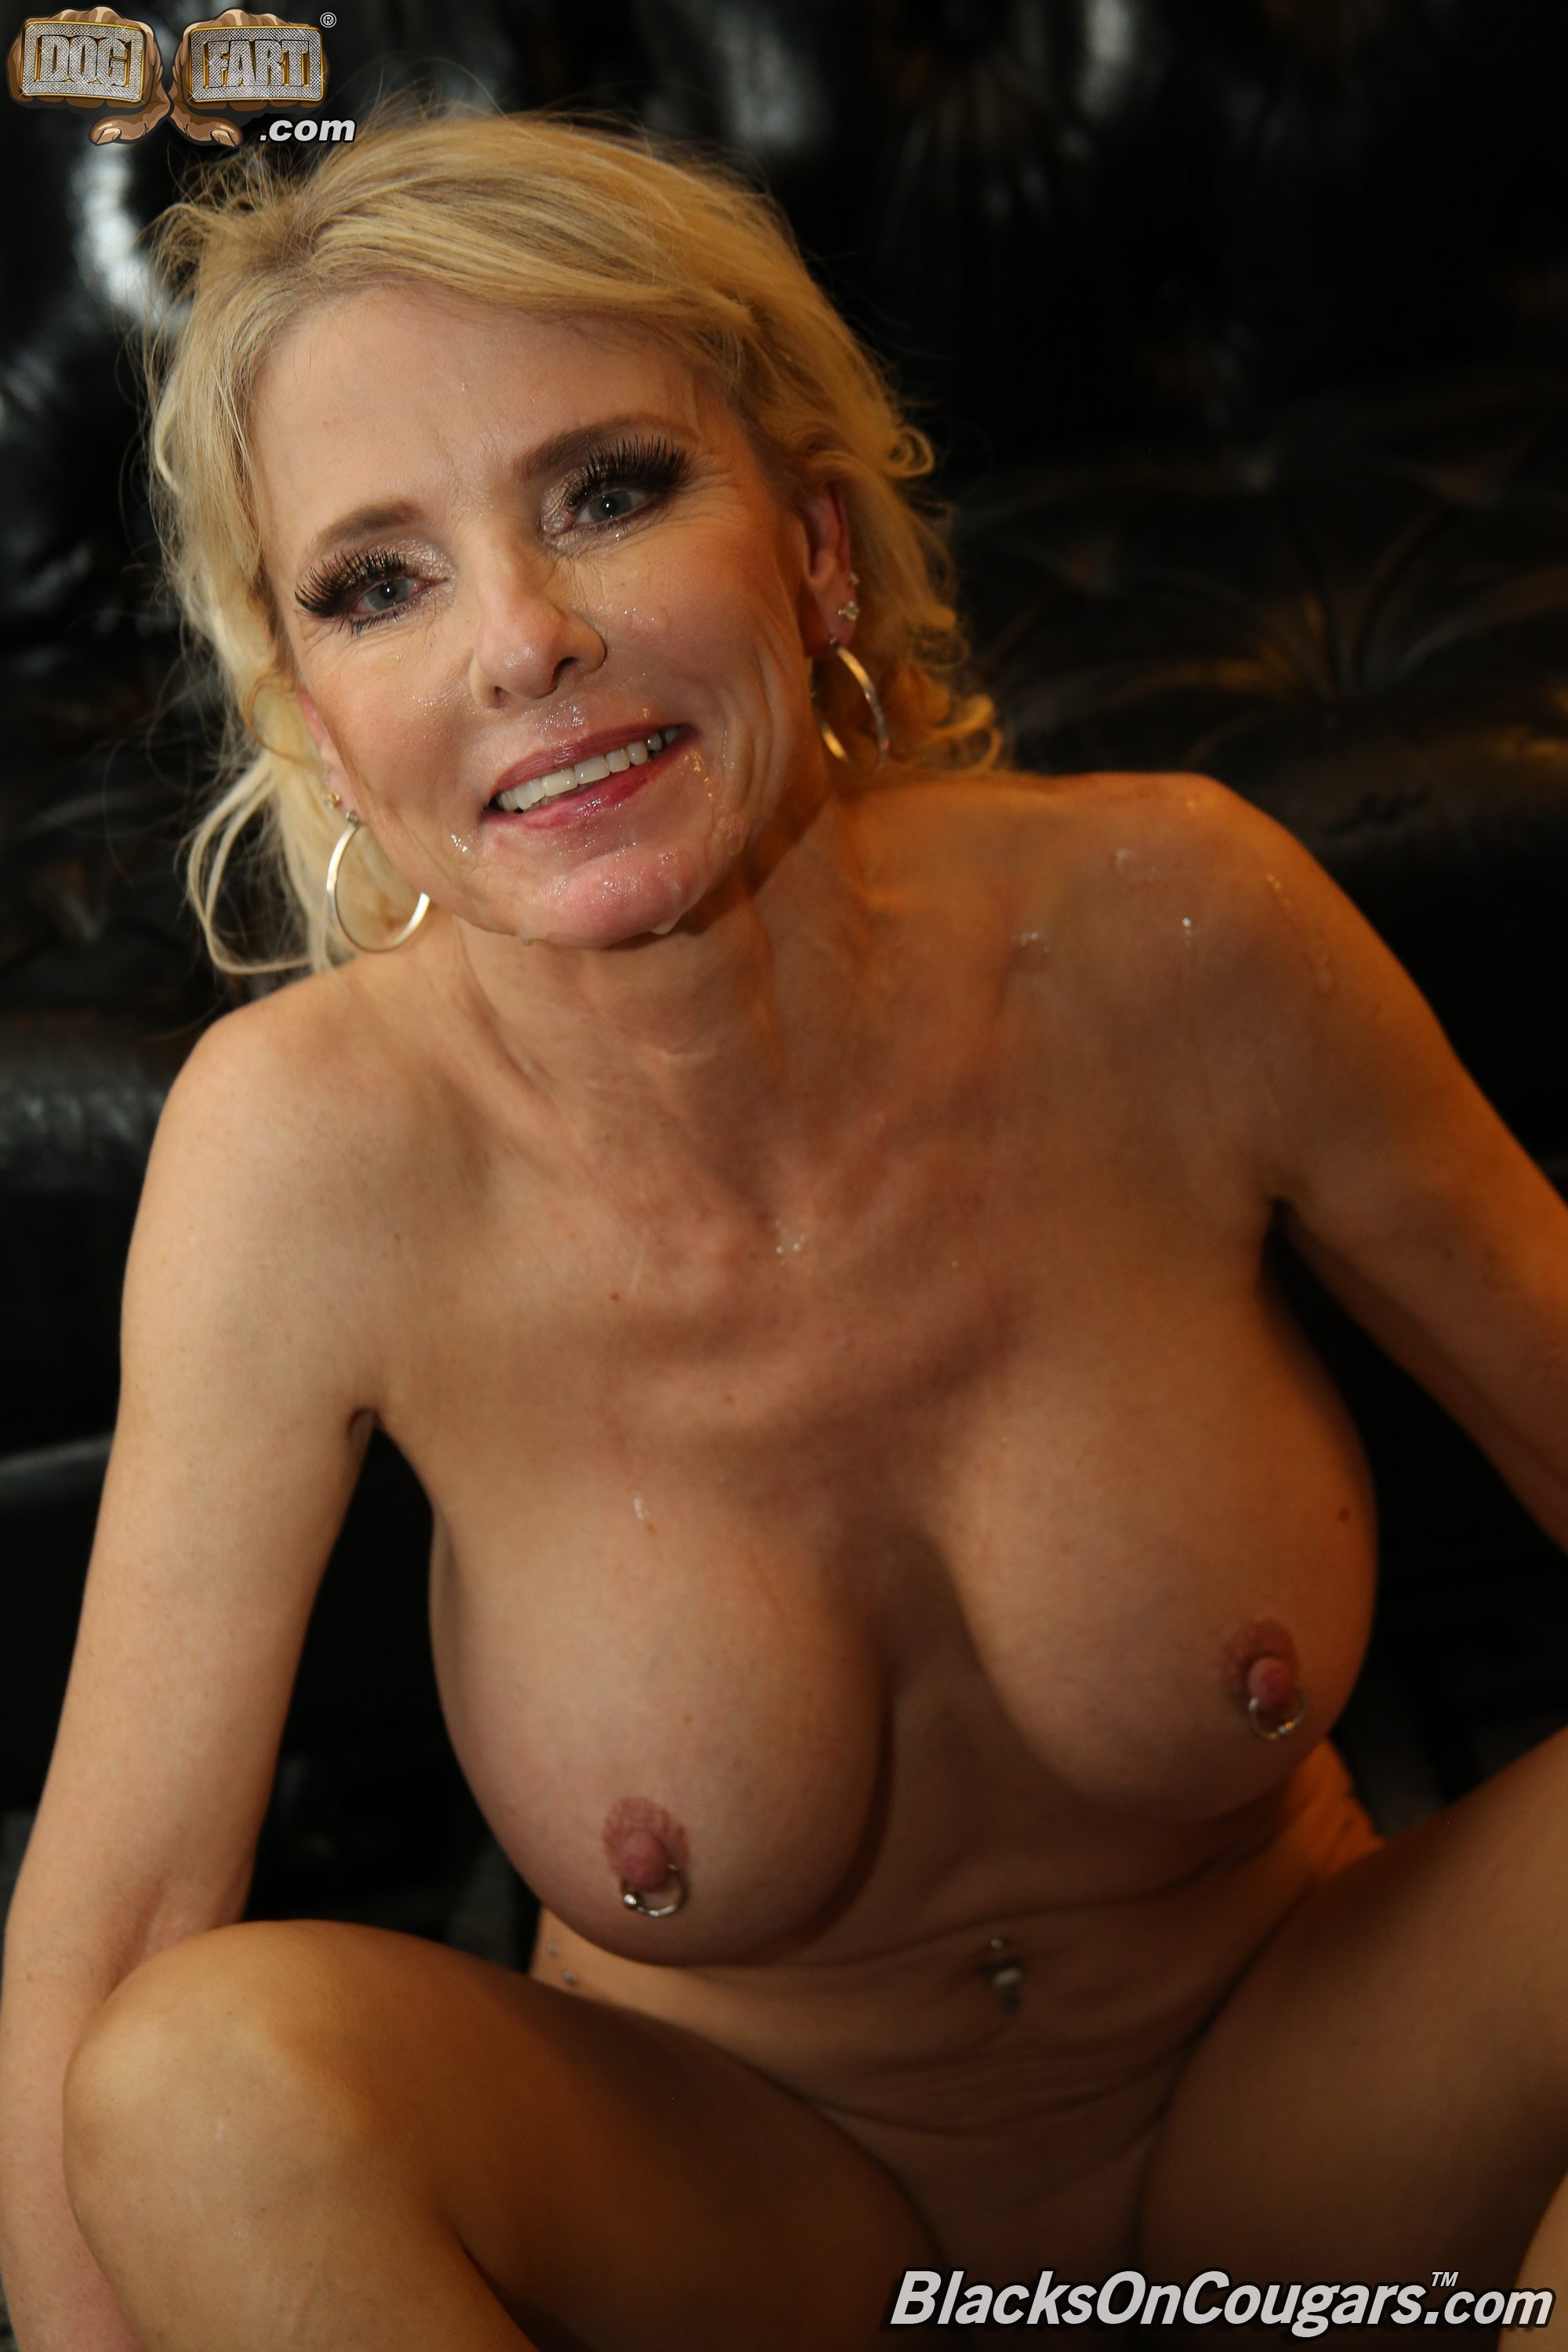 middle aged women nude photos